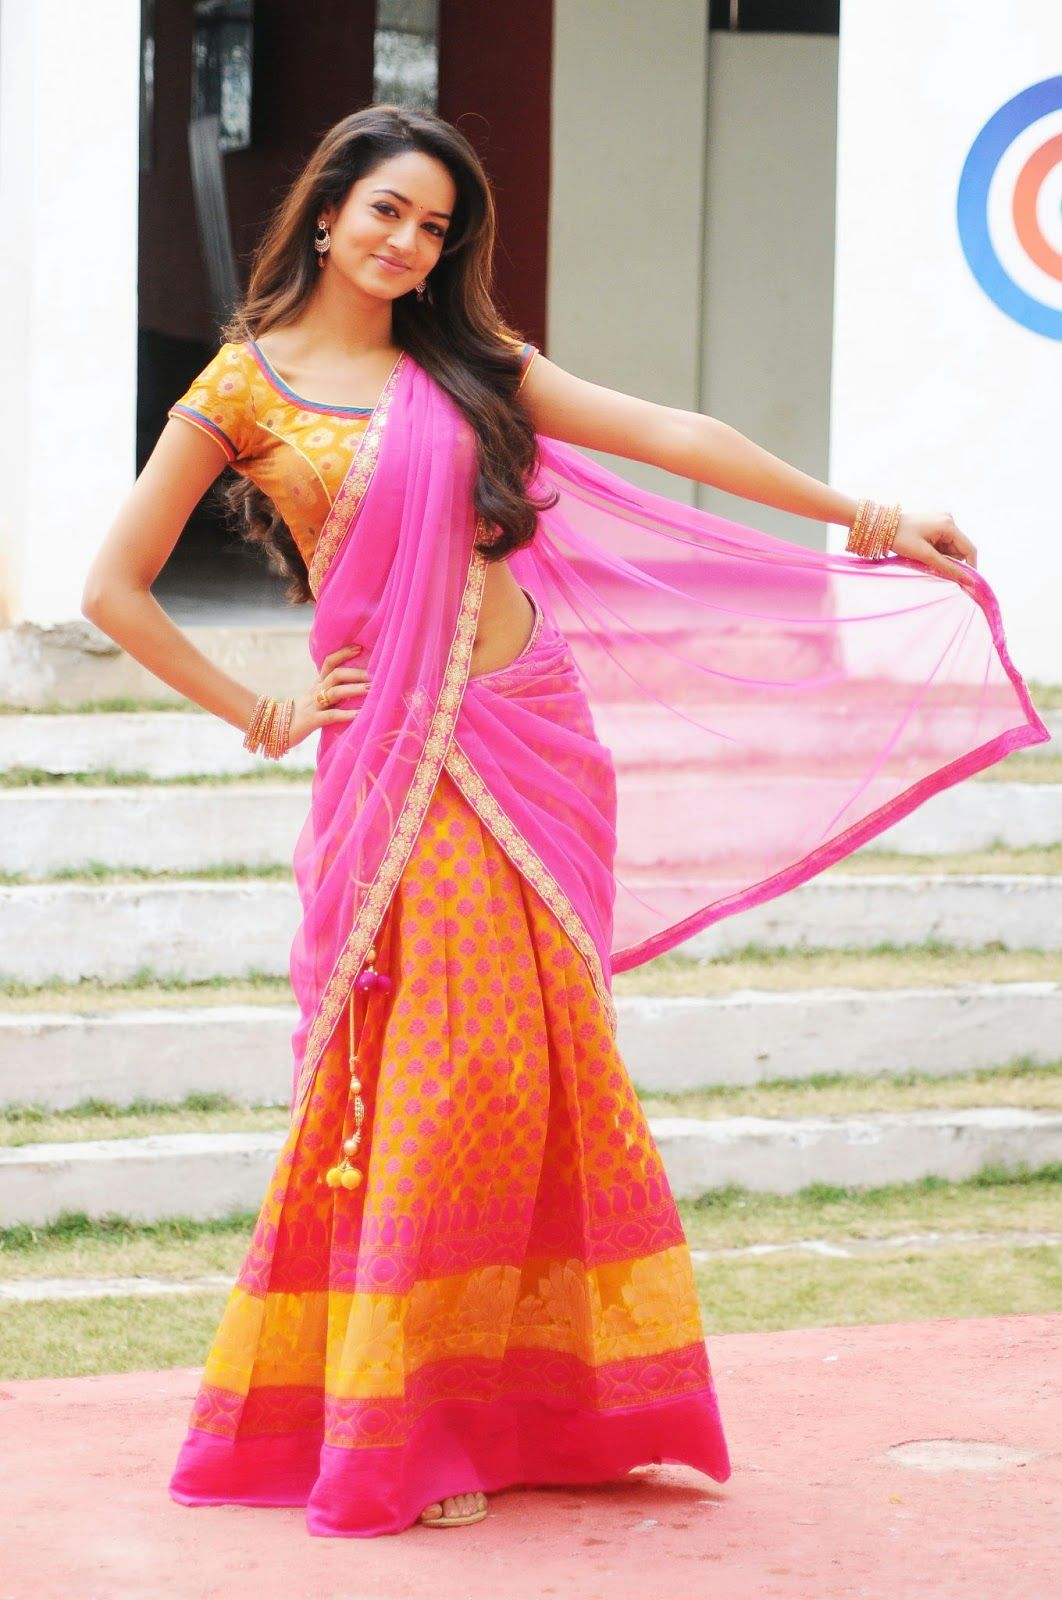 shanvi in traditional half saree | Things to Wear | Pinterest | Half ...